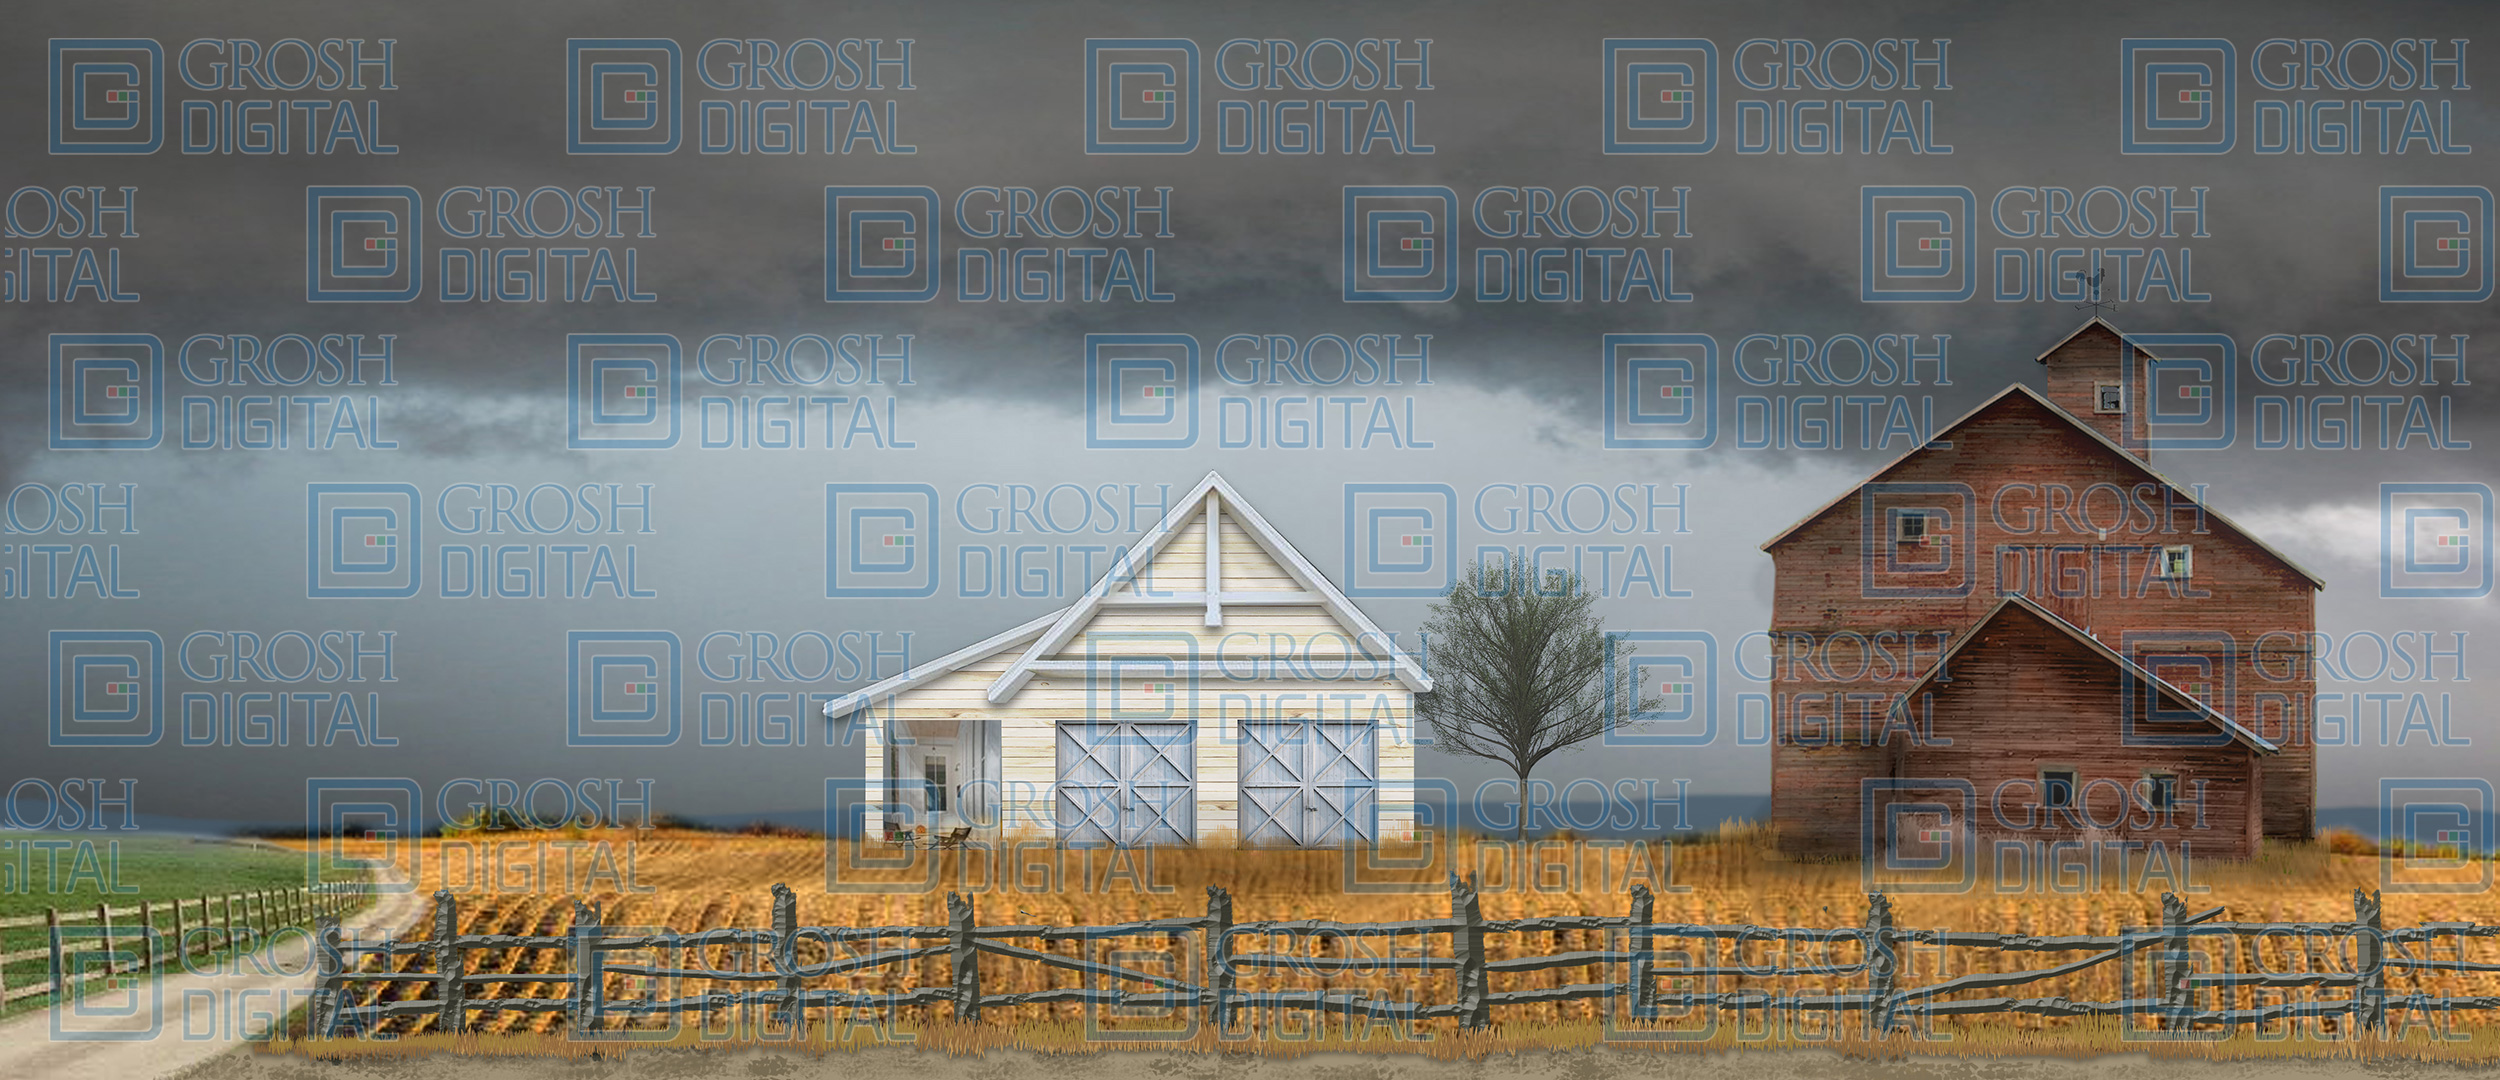 Kansas Farm Projected Backdrop for Landscapes, Oklahoma, Seven Brides for Seven Brothers, Wizard of Oz